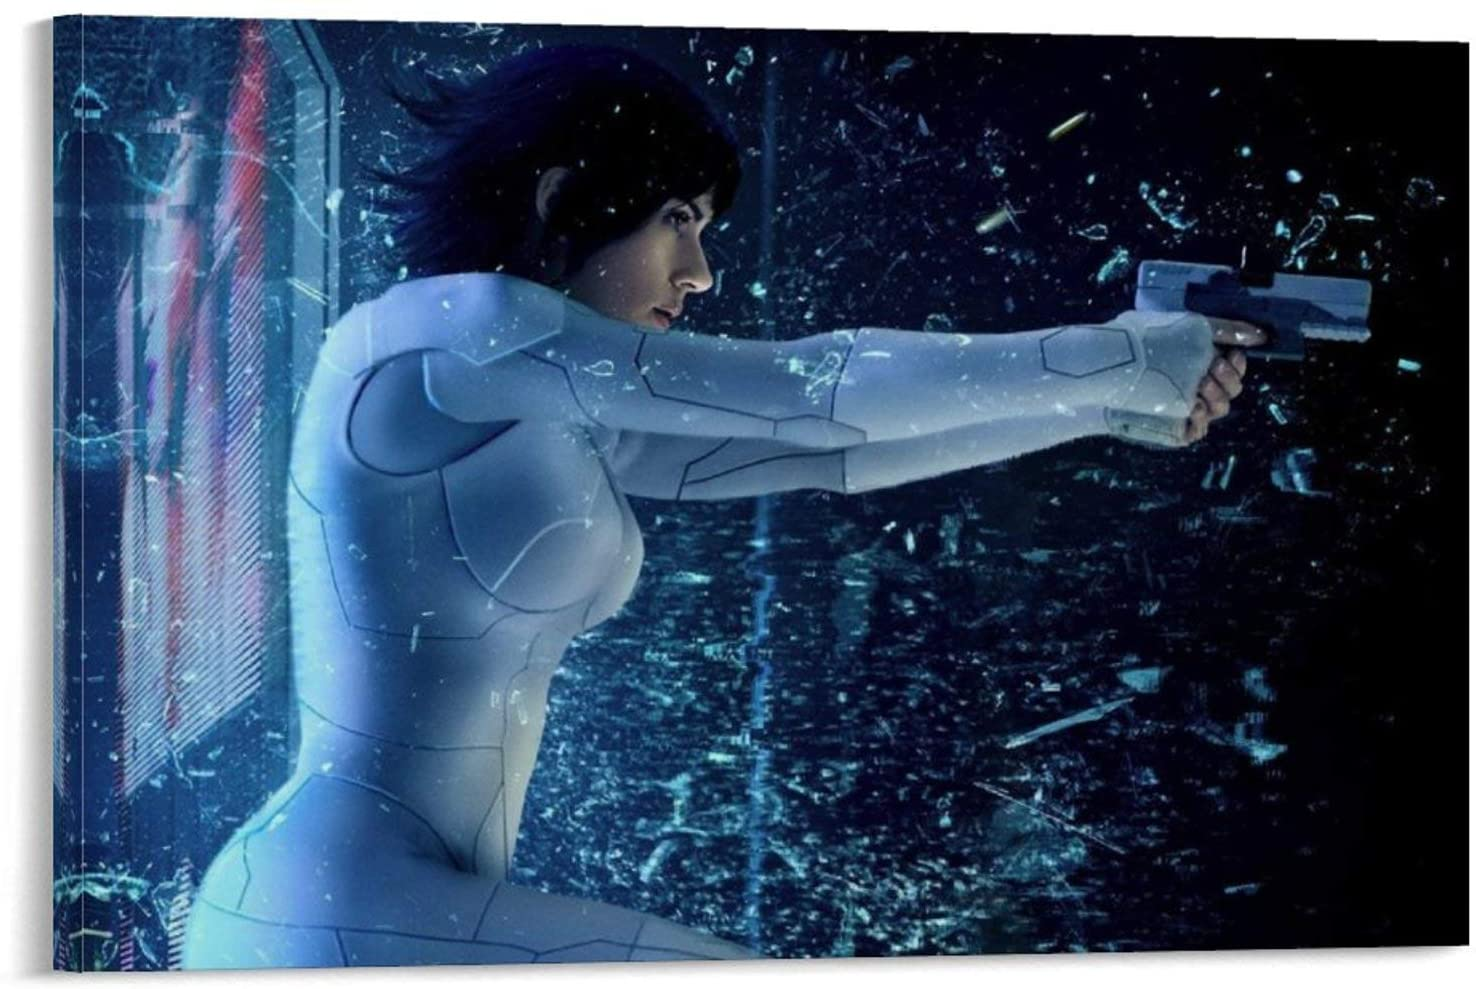 Ghost in The Shell 2017 Canvas Art Poster and Wall Art Picture Print Modern Family Bedroom Decor Posters 24x36inch(60x90cm)